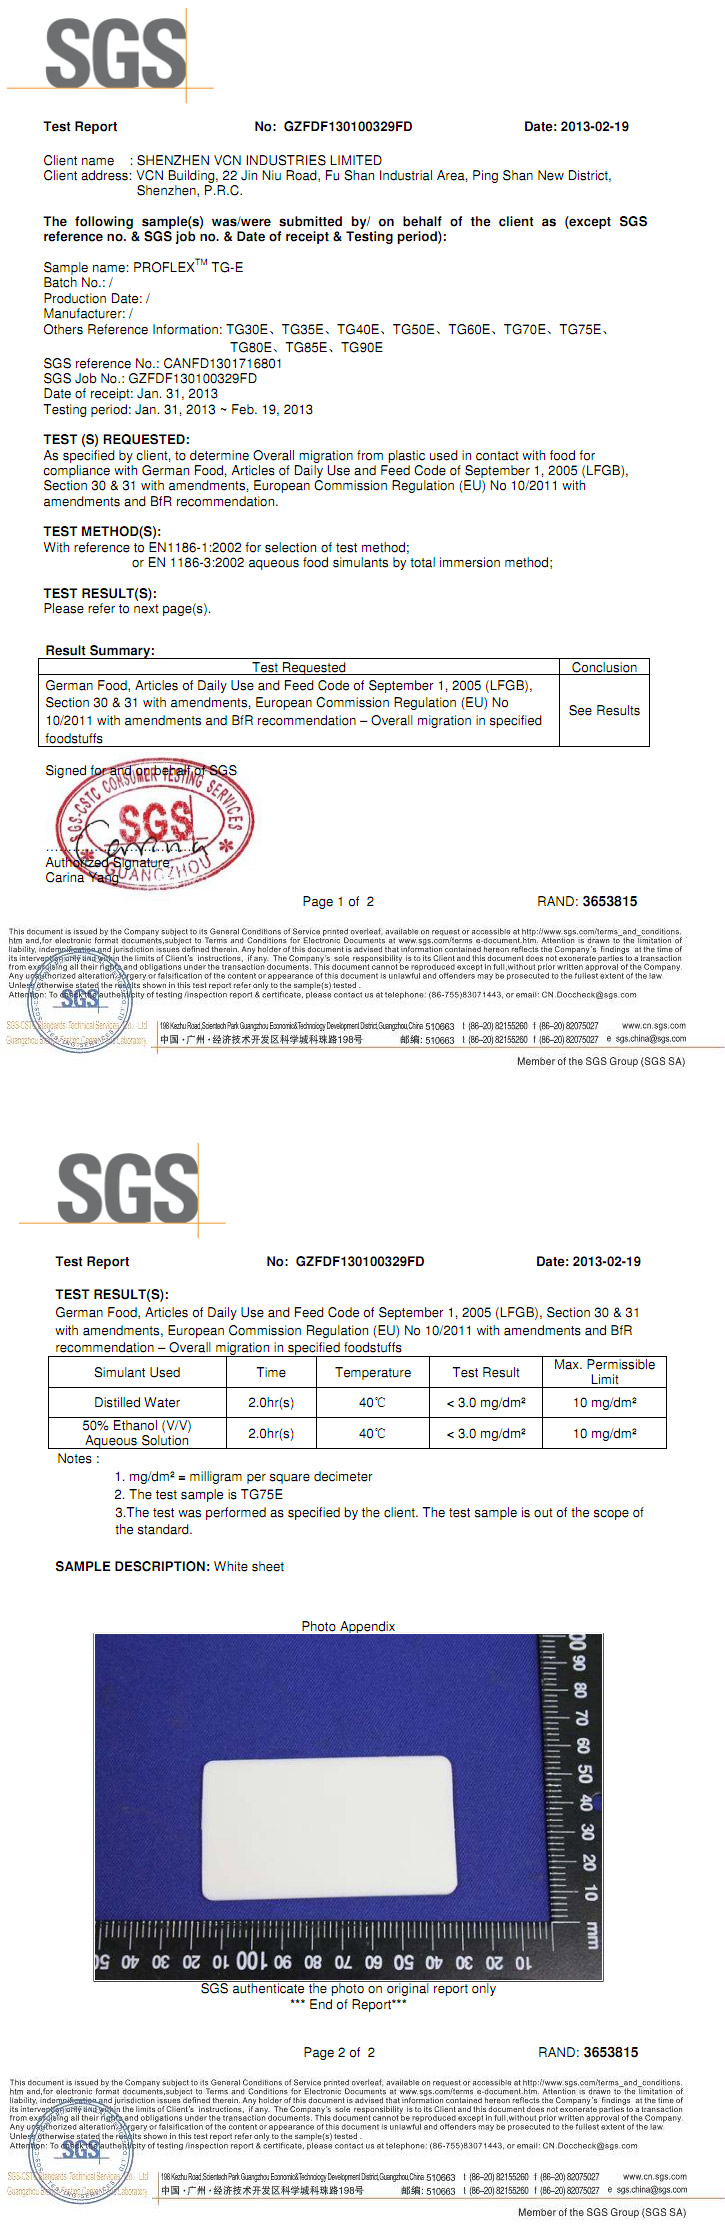 PROFLEX TG-E Series LFGB 50% Alcohol and Distilled Water Test